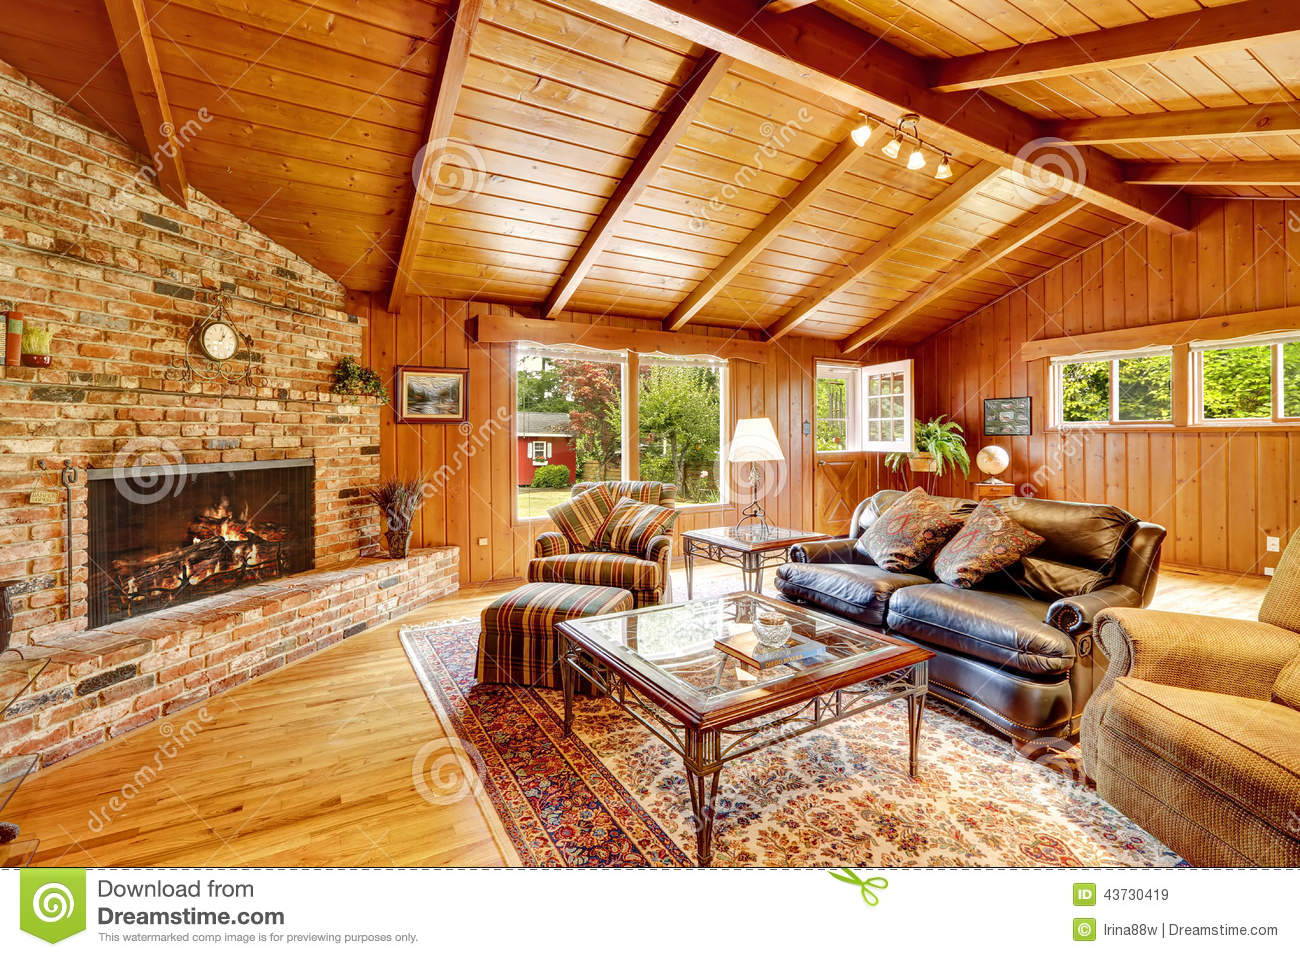 Luxury Log Cabin House Interior Living Room With